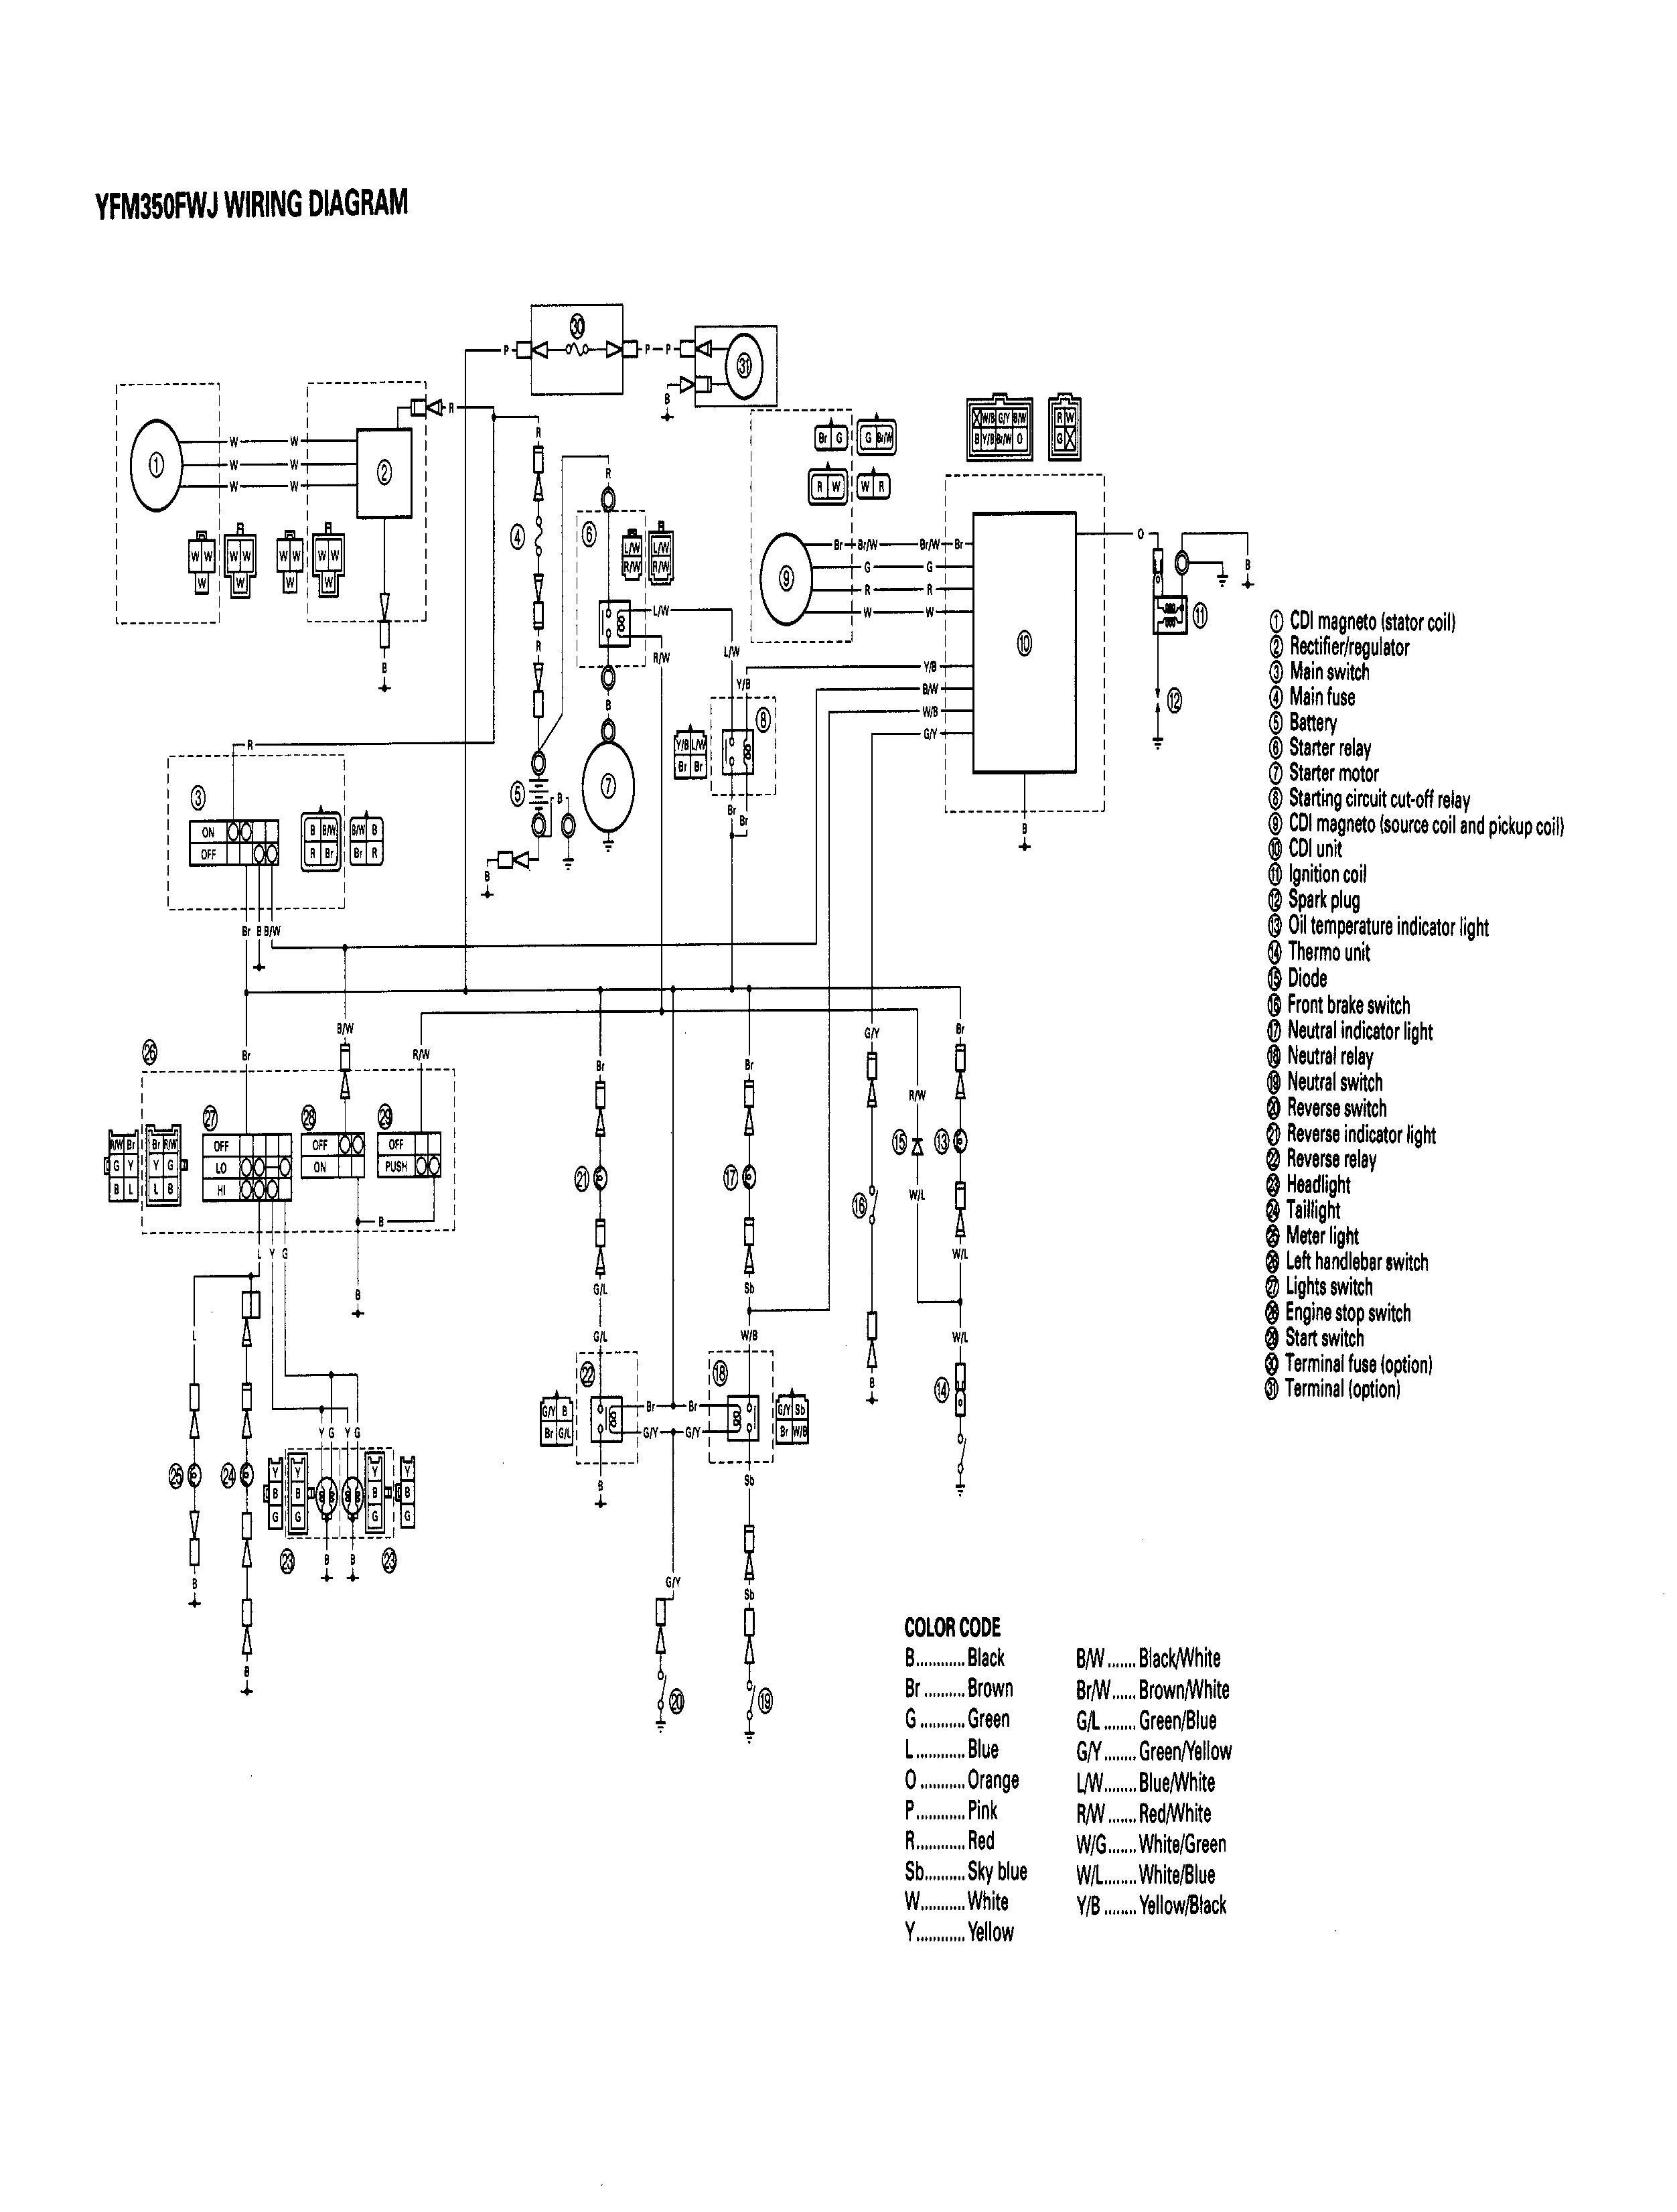 54194d1504032570 1996 bigbear 350 4x4 wiring yamaha big bear 350 wiring diagram_548755 1996 bigbear 350 4x4 wiring yamaha grizzly atv forum 2000 yamaha blaster wiring diagram at readyjetset.co